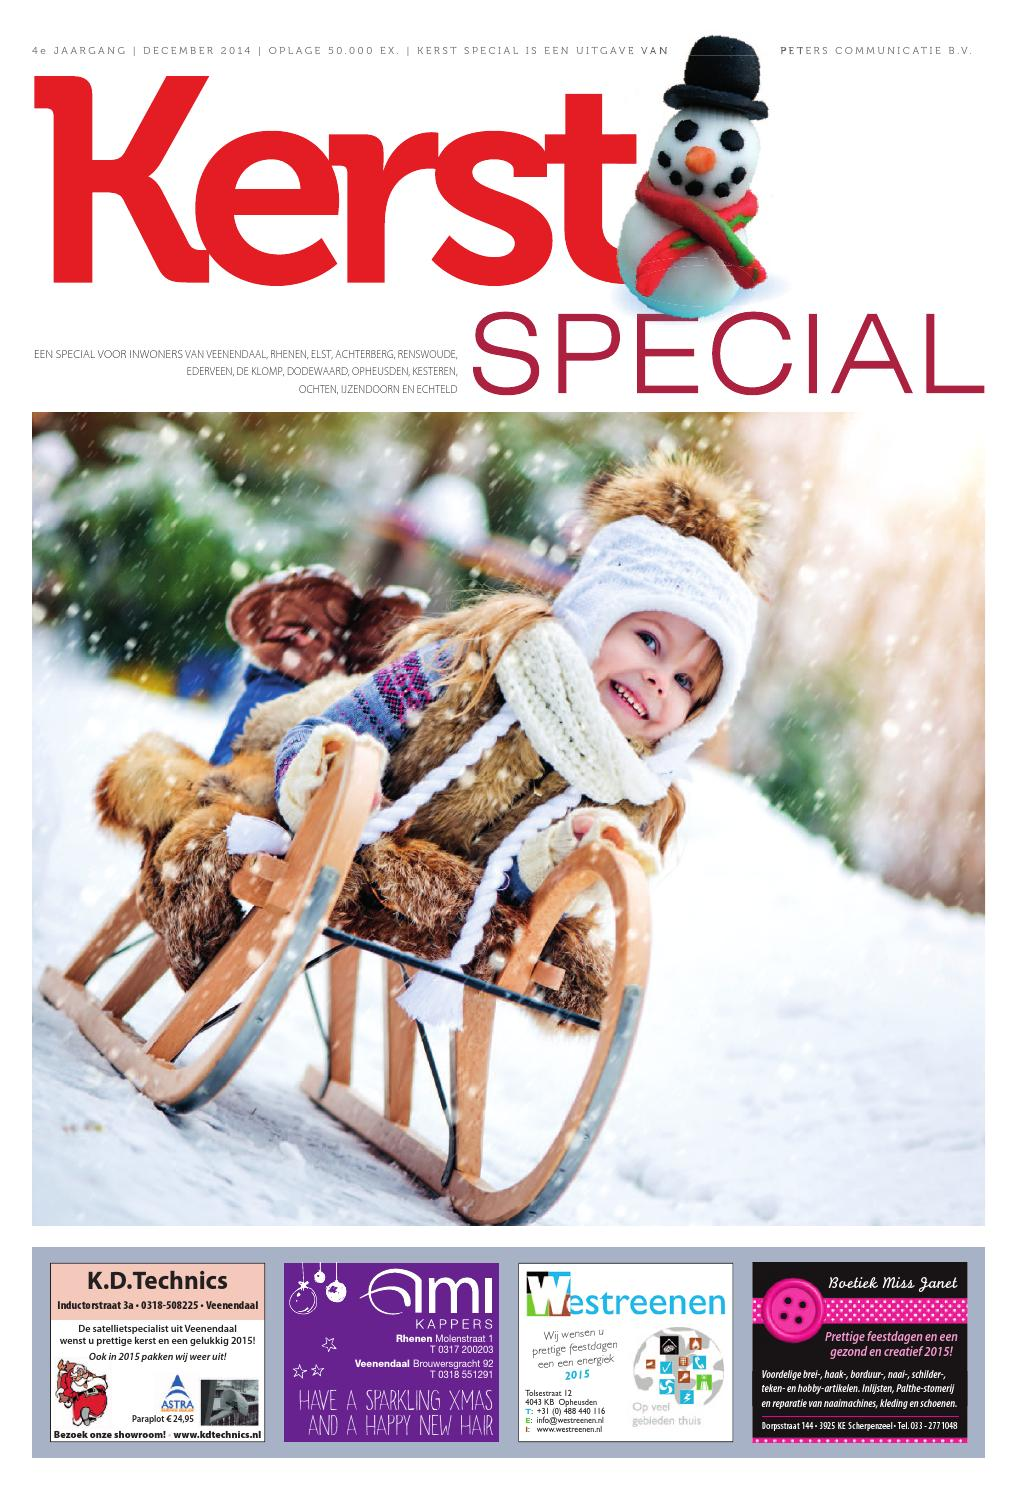 Dec 03, · Lowe's Weekly Ad December 6 - 12, by this post. Browse the current Lowe's weekly ad this week, Preview valid 12/6 - 12/ Don't miss the Lowe's coupon and deals from the current ad.